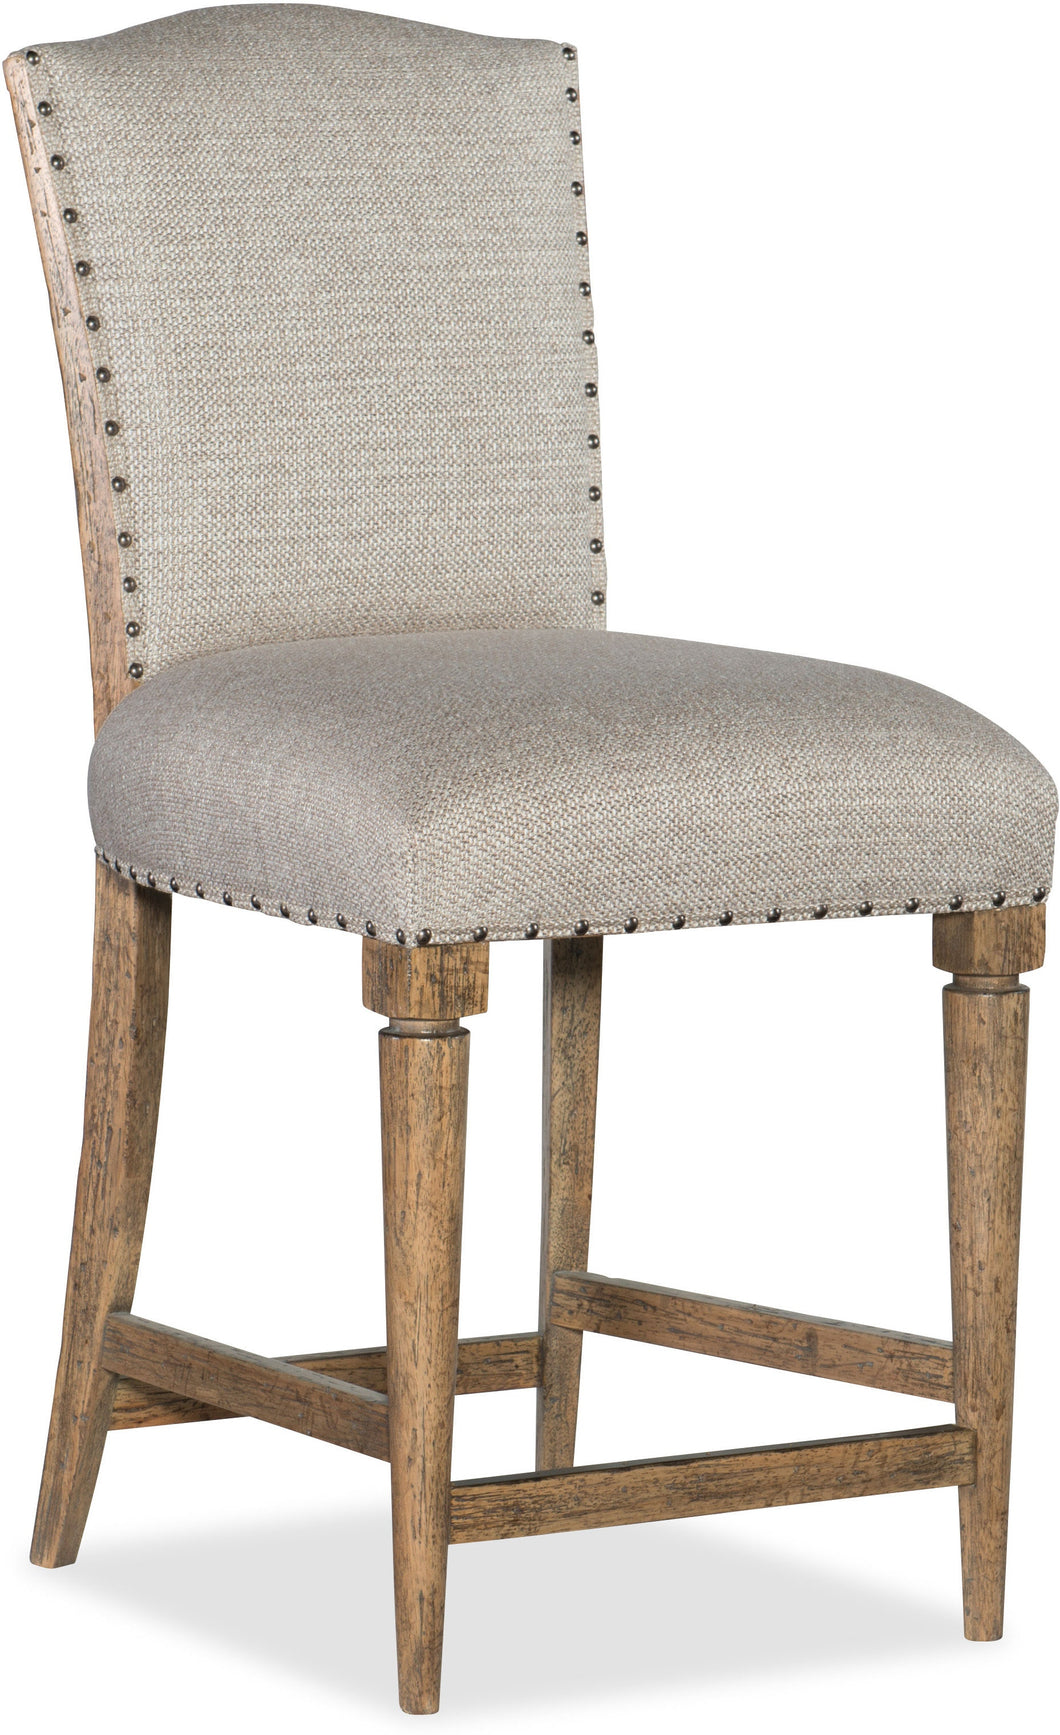 Hooker Furniture Dining Room Roslyn County Deconstructed Counter Stool - Dream art Gallery